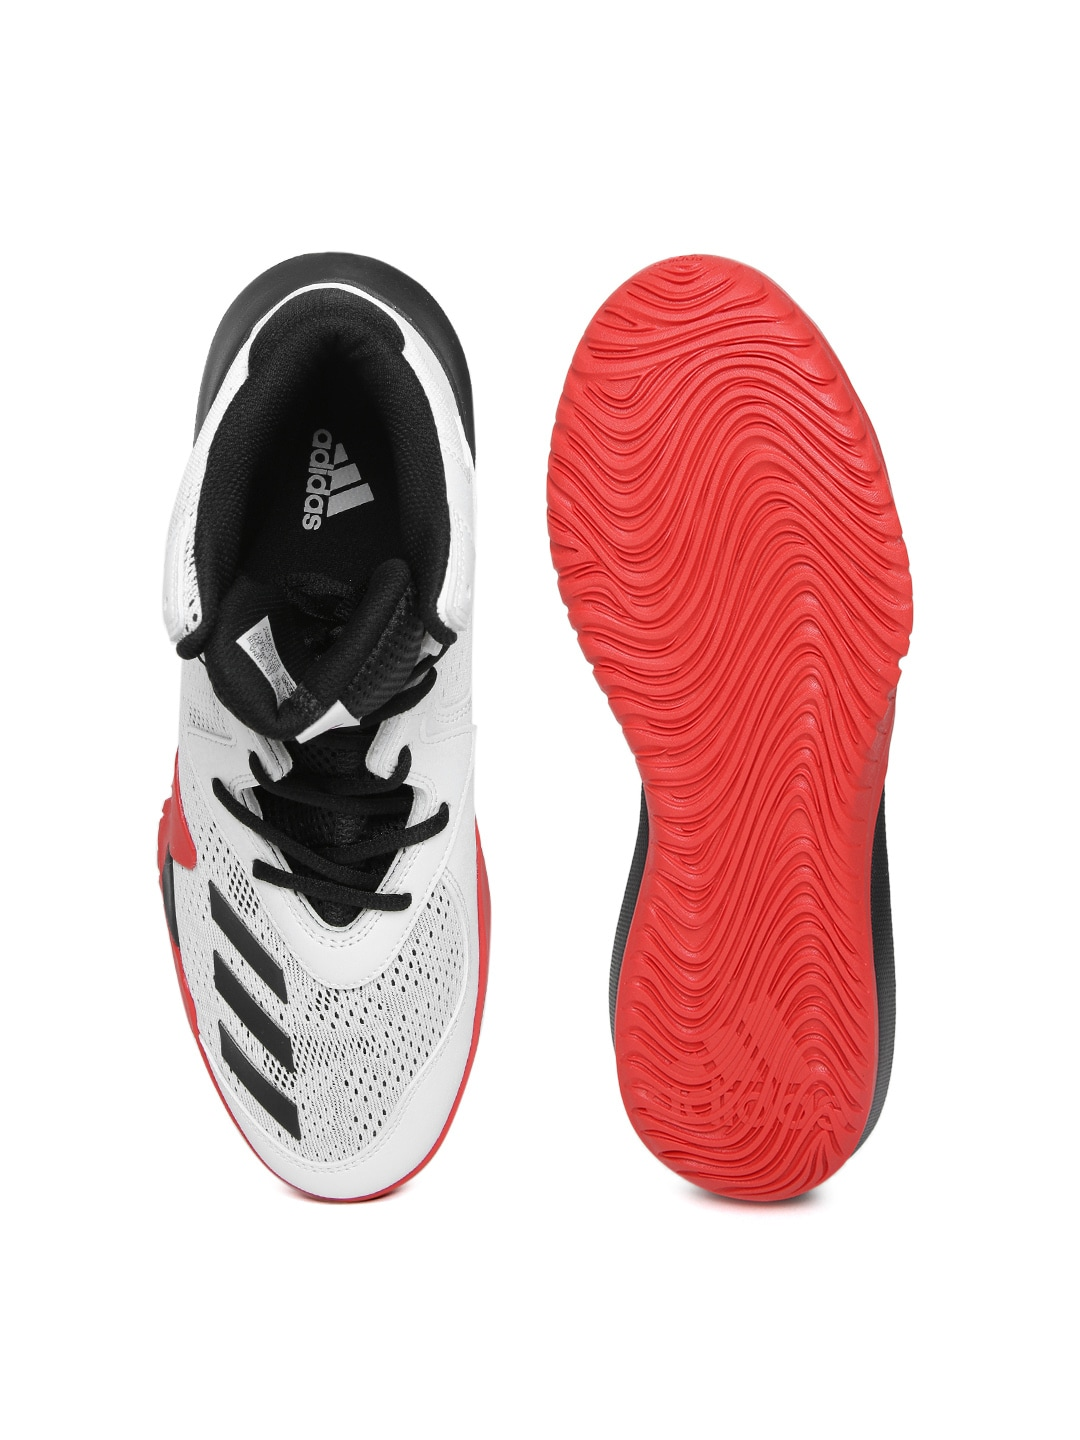 nike, adidas comprare nike, adidas online in india